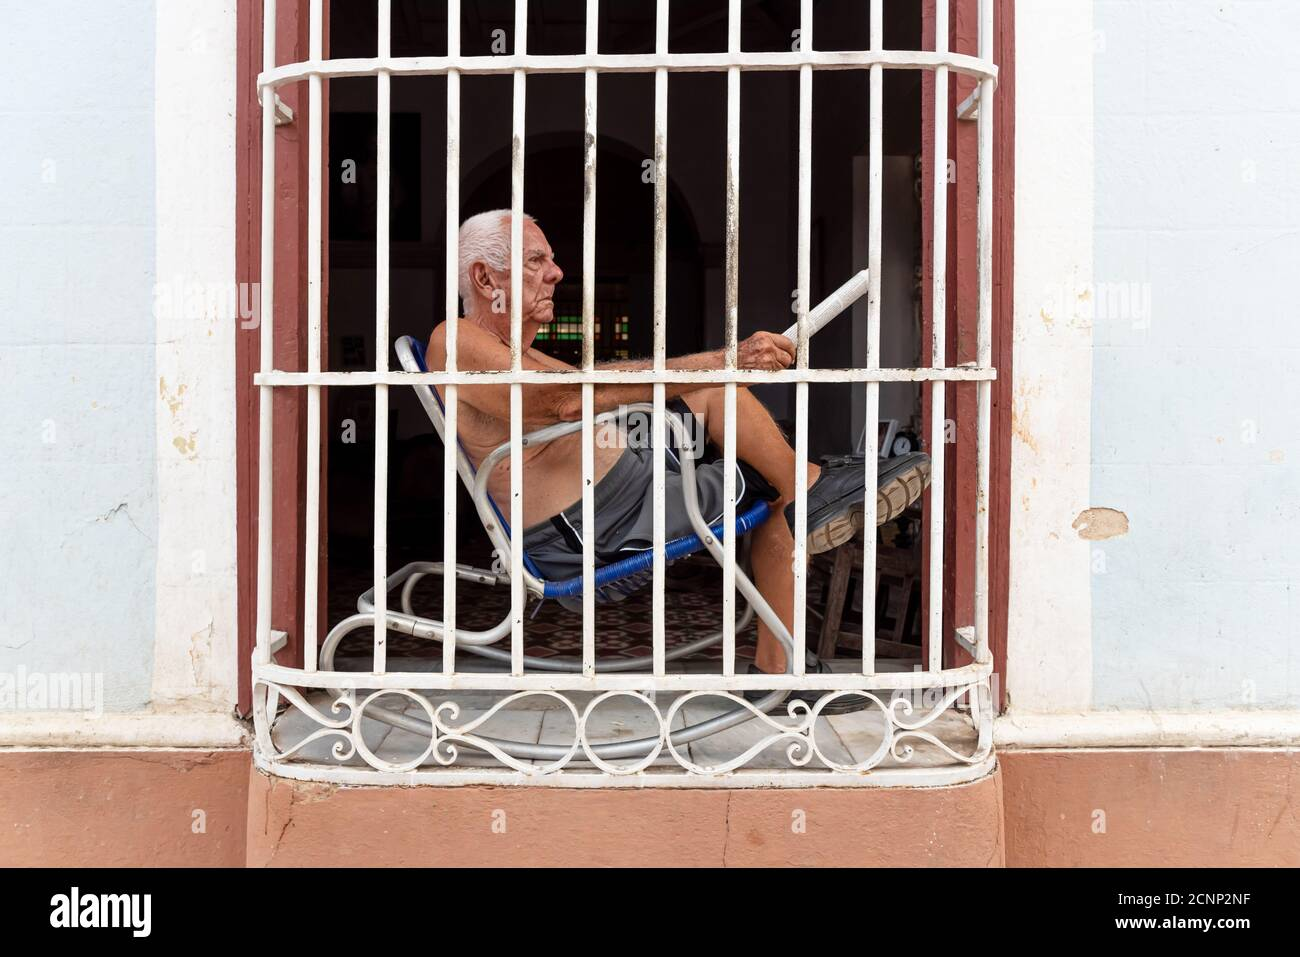 August 26, 2019: Man sitting in front of his window with bars. Trinidad, Cuba Stock Photo